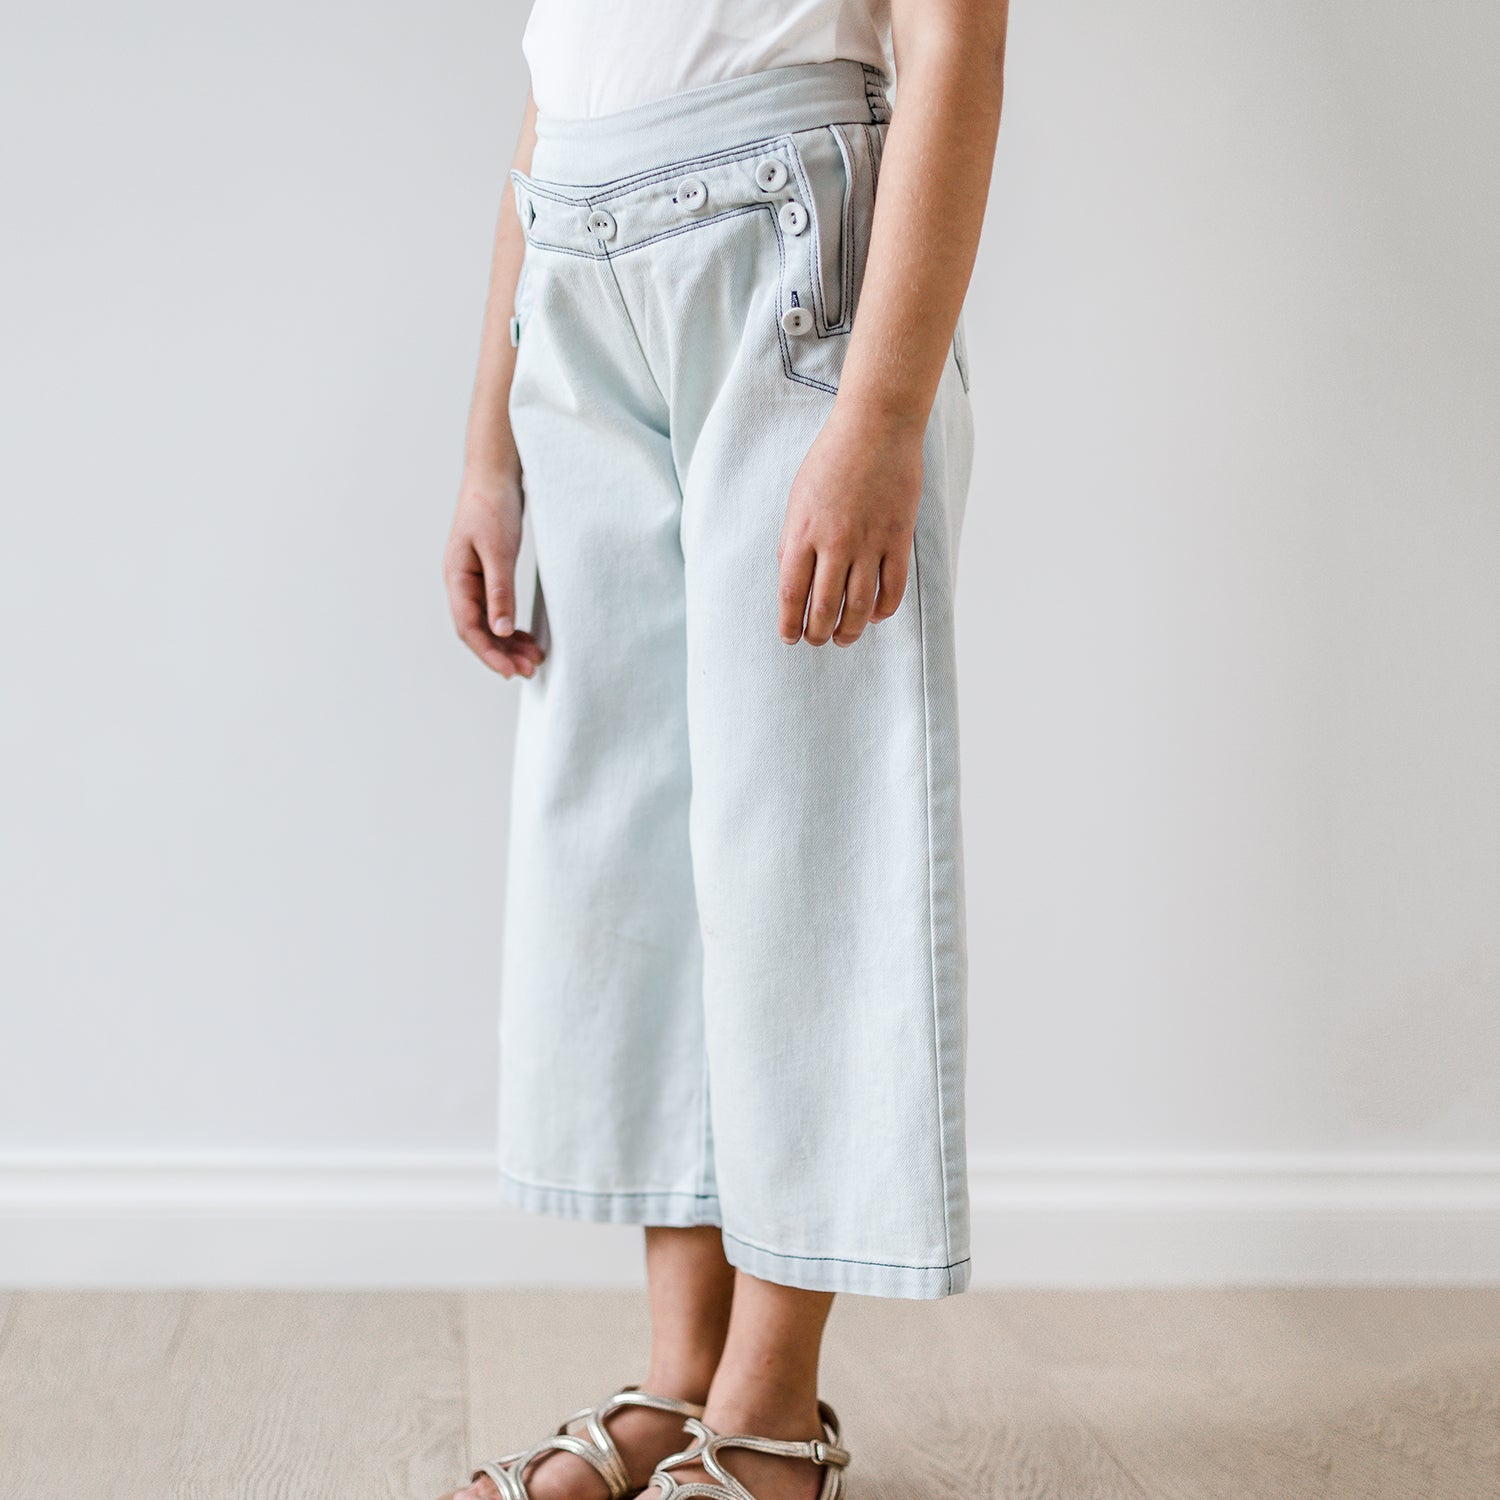 yoya, kids, girls, petite amalie, summer, lightweight, button front, wide leg, denim, sailor pants, jeans